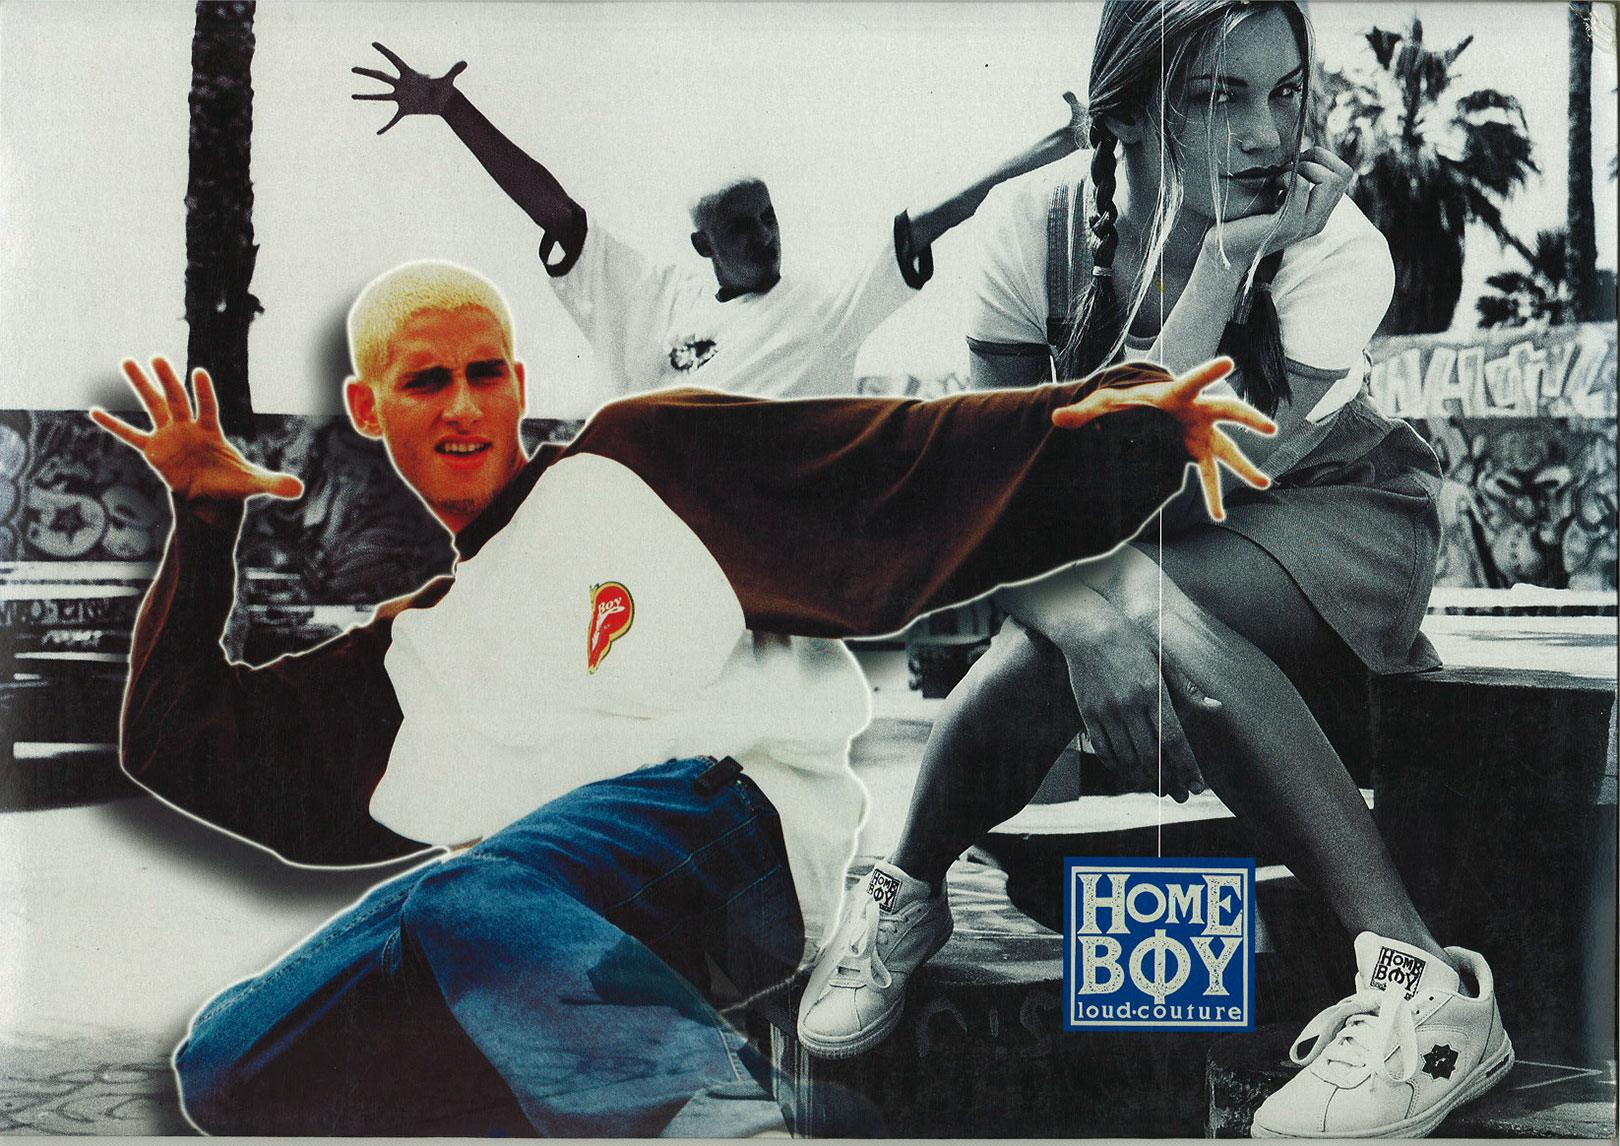 1996 Homeboy Loud Couture